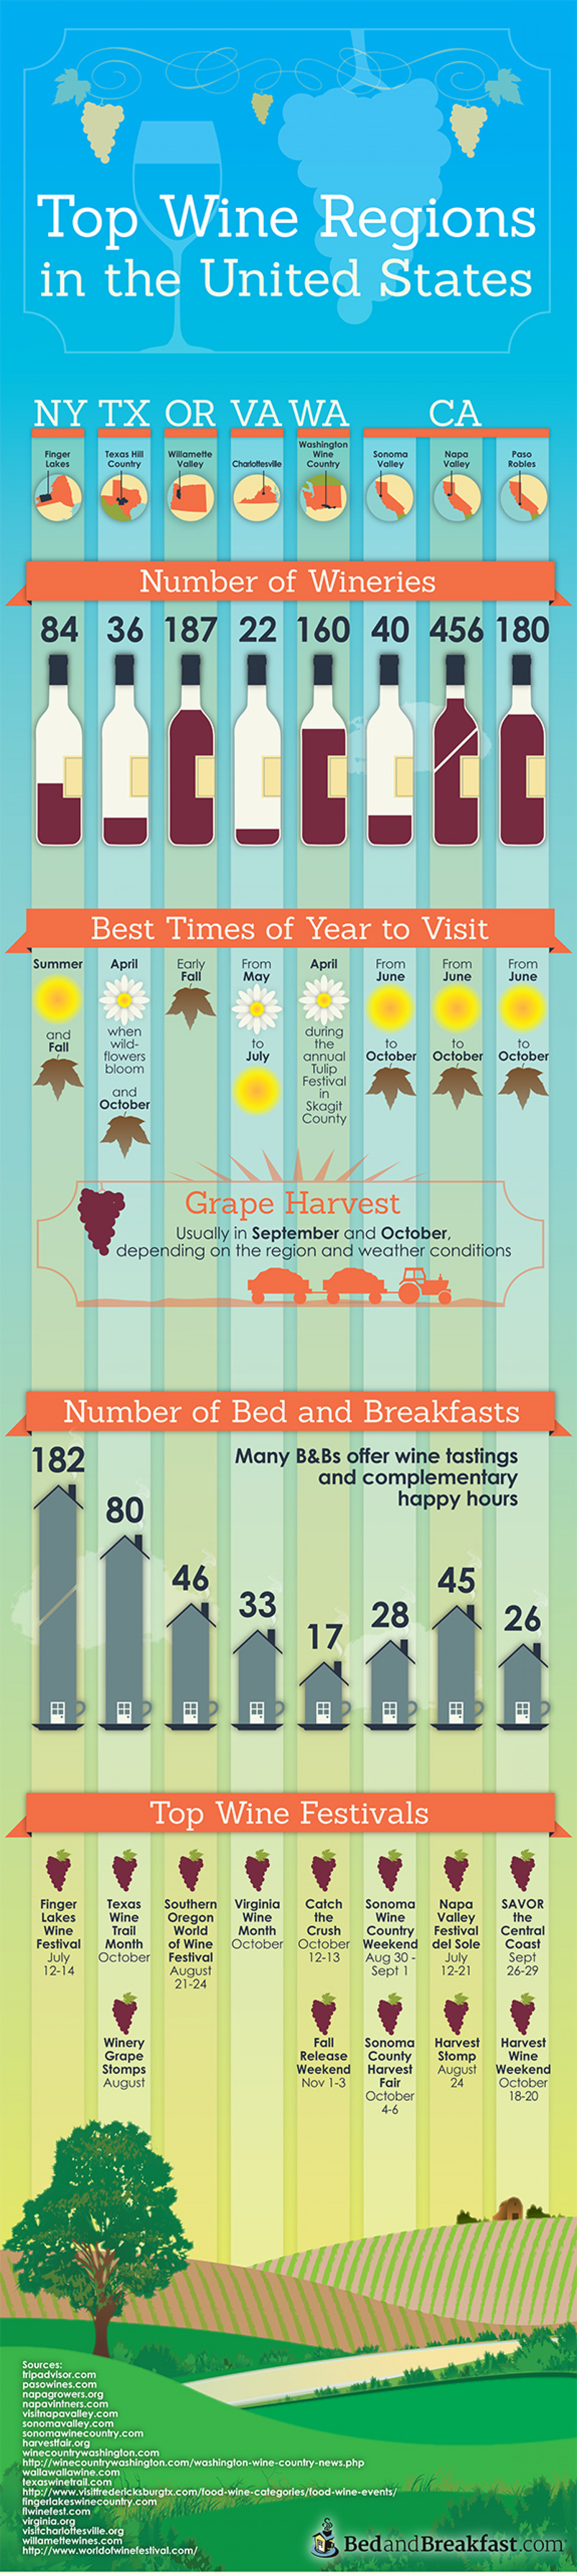 Top Wine Regions in the United States Infographic